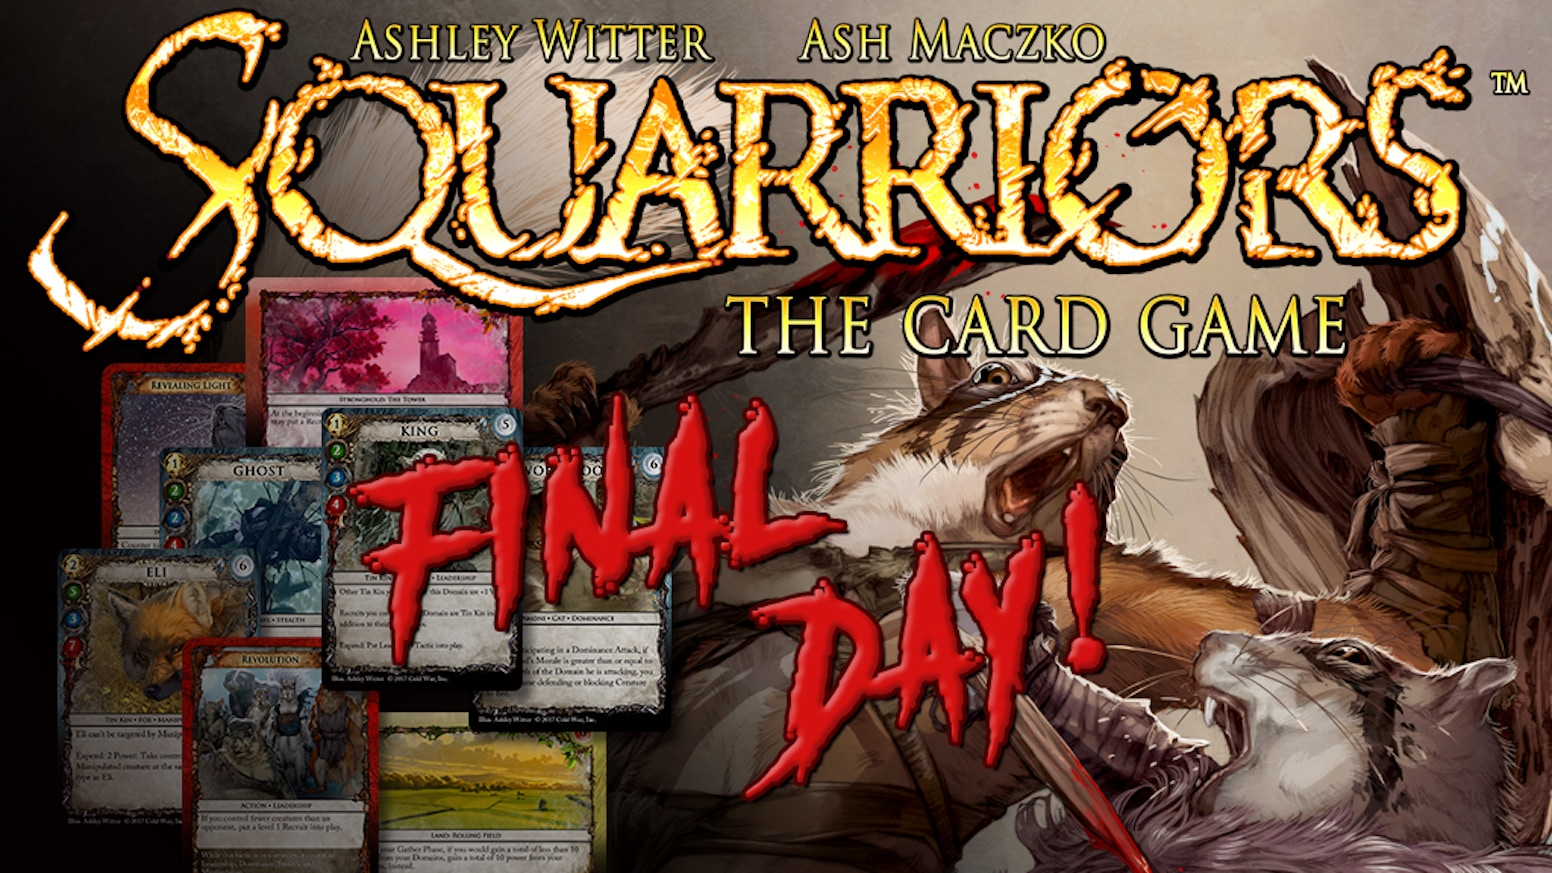 The official tabletop card game based on the hit indie-comic, SQUARRIORS. Build your Tribe. Focus your Strategy. Survive.